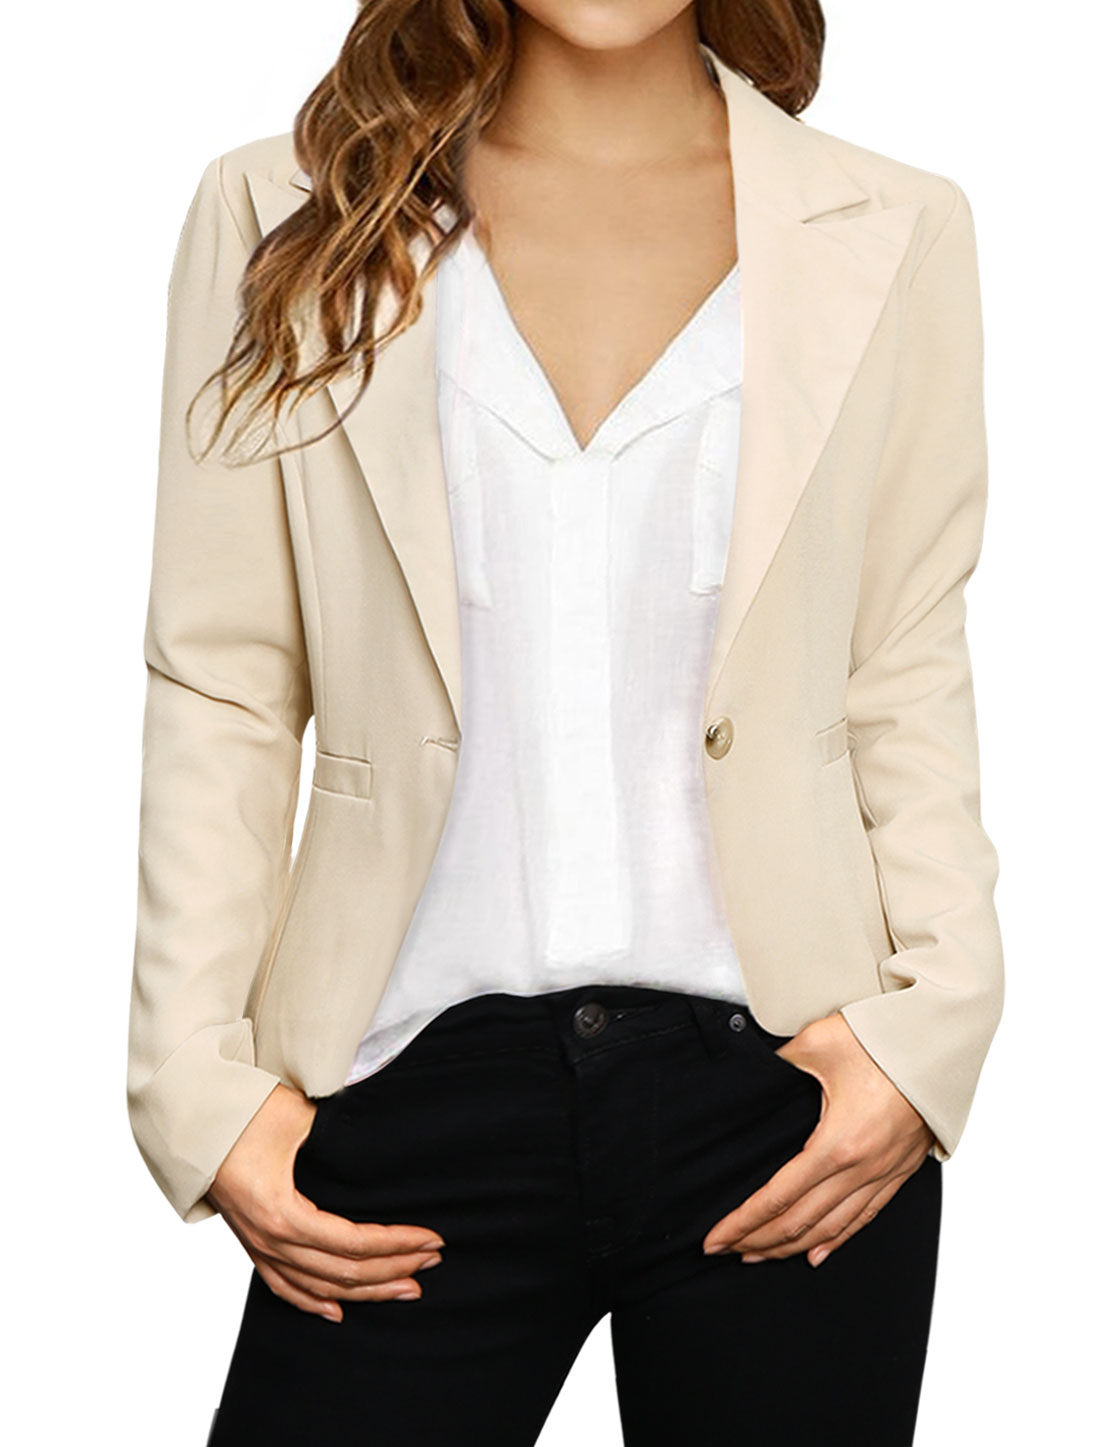 Ladies Long Sleeves One-Button Elbow-Patch Blazer Jacket Beige L